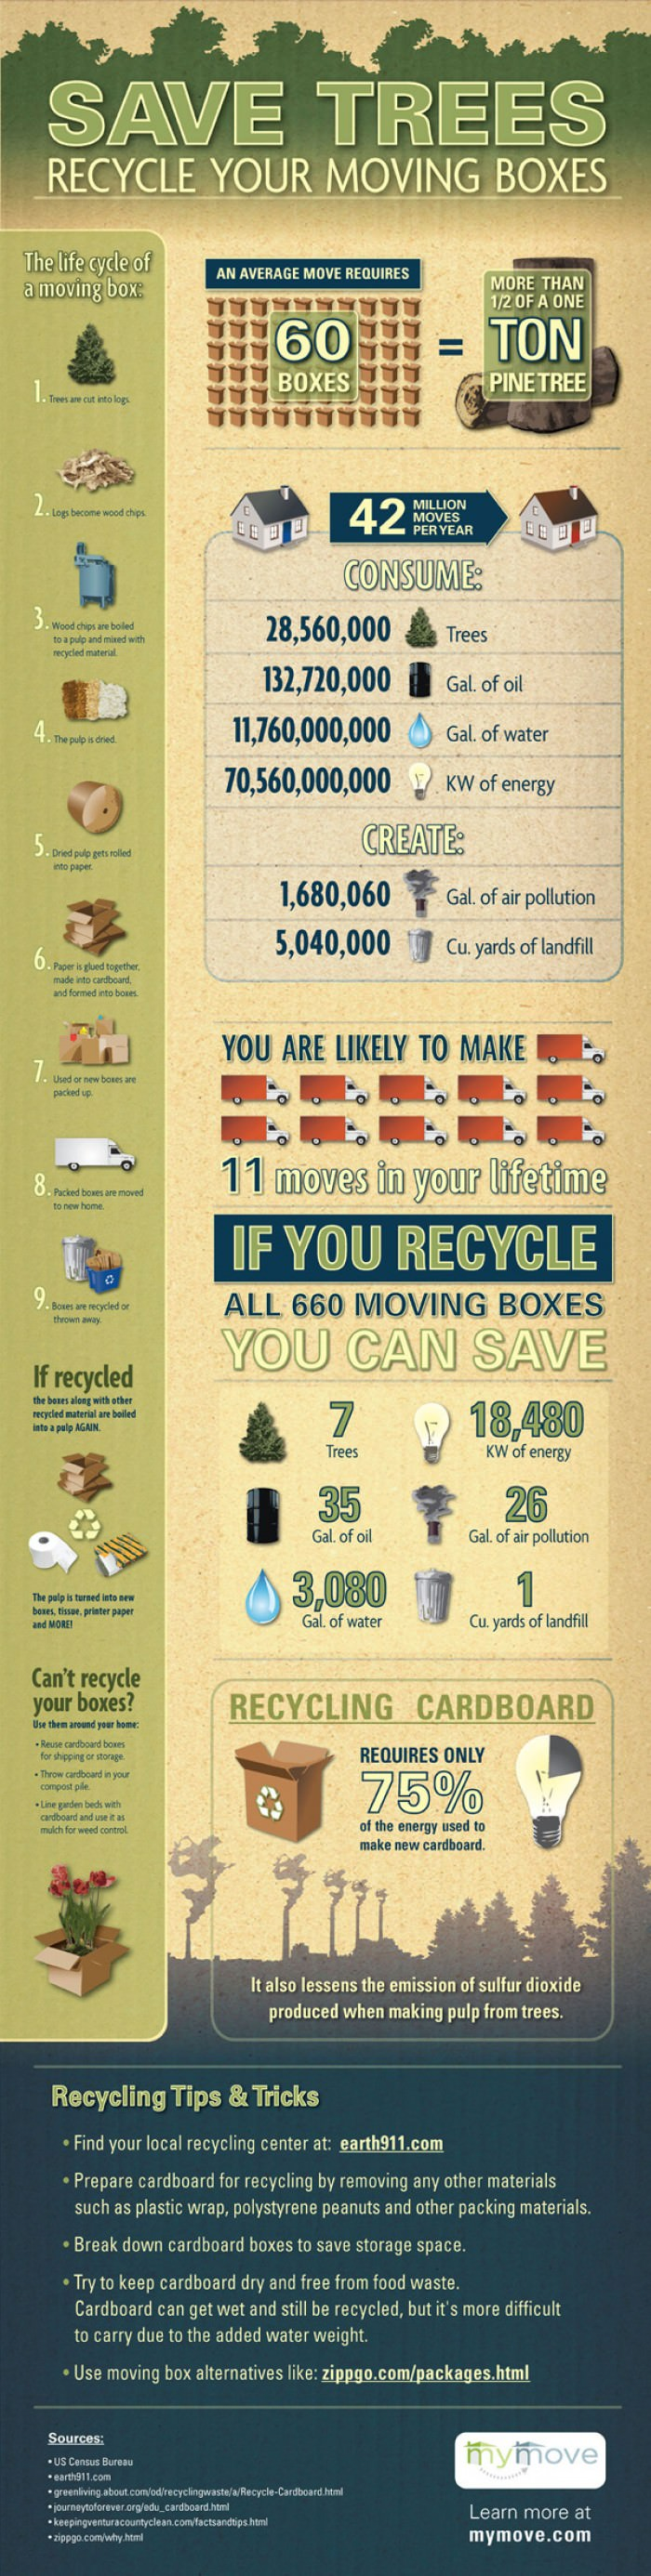 How to Recycle Cardboard   Earth911 com Save Trees  Recycle Your Moving Boxes